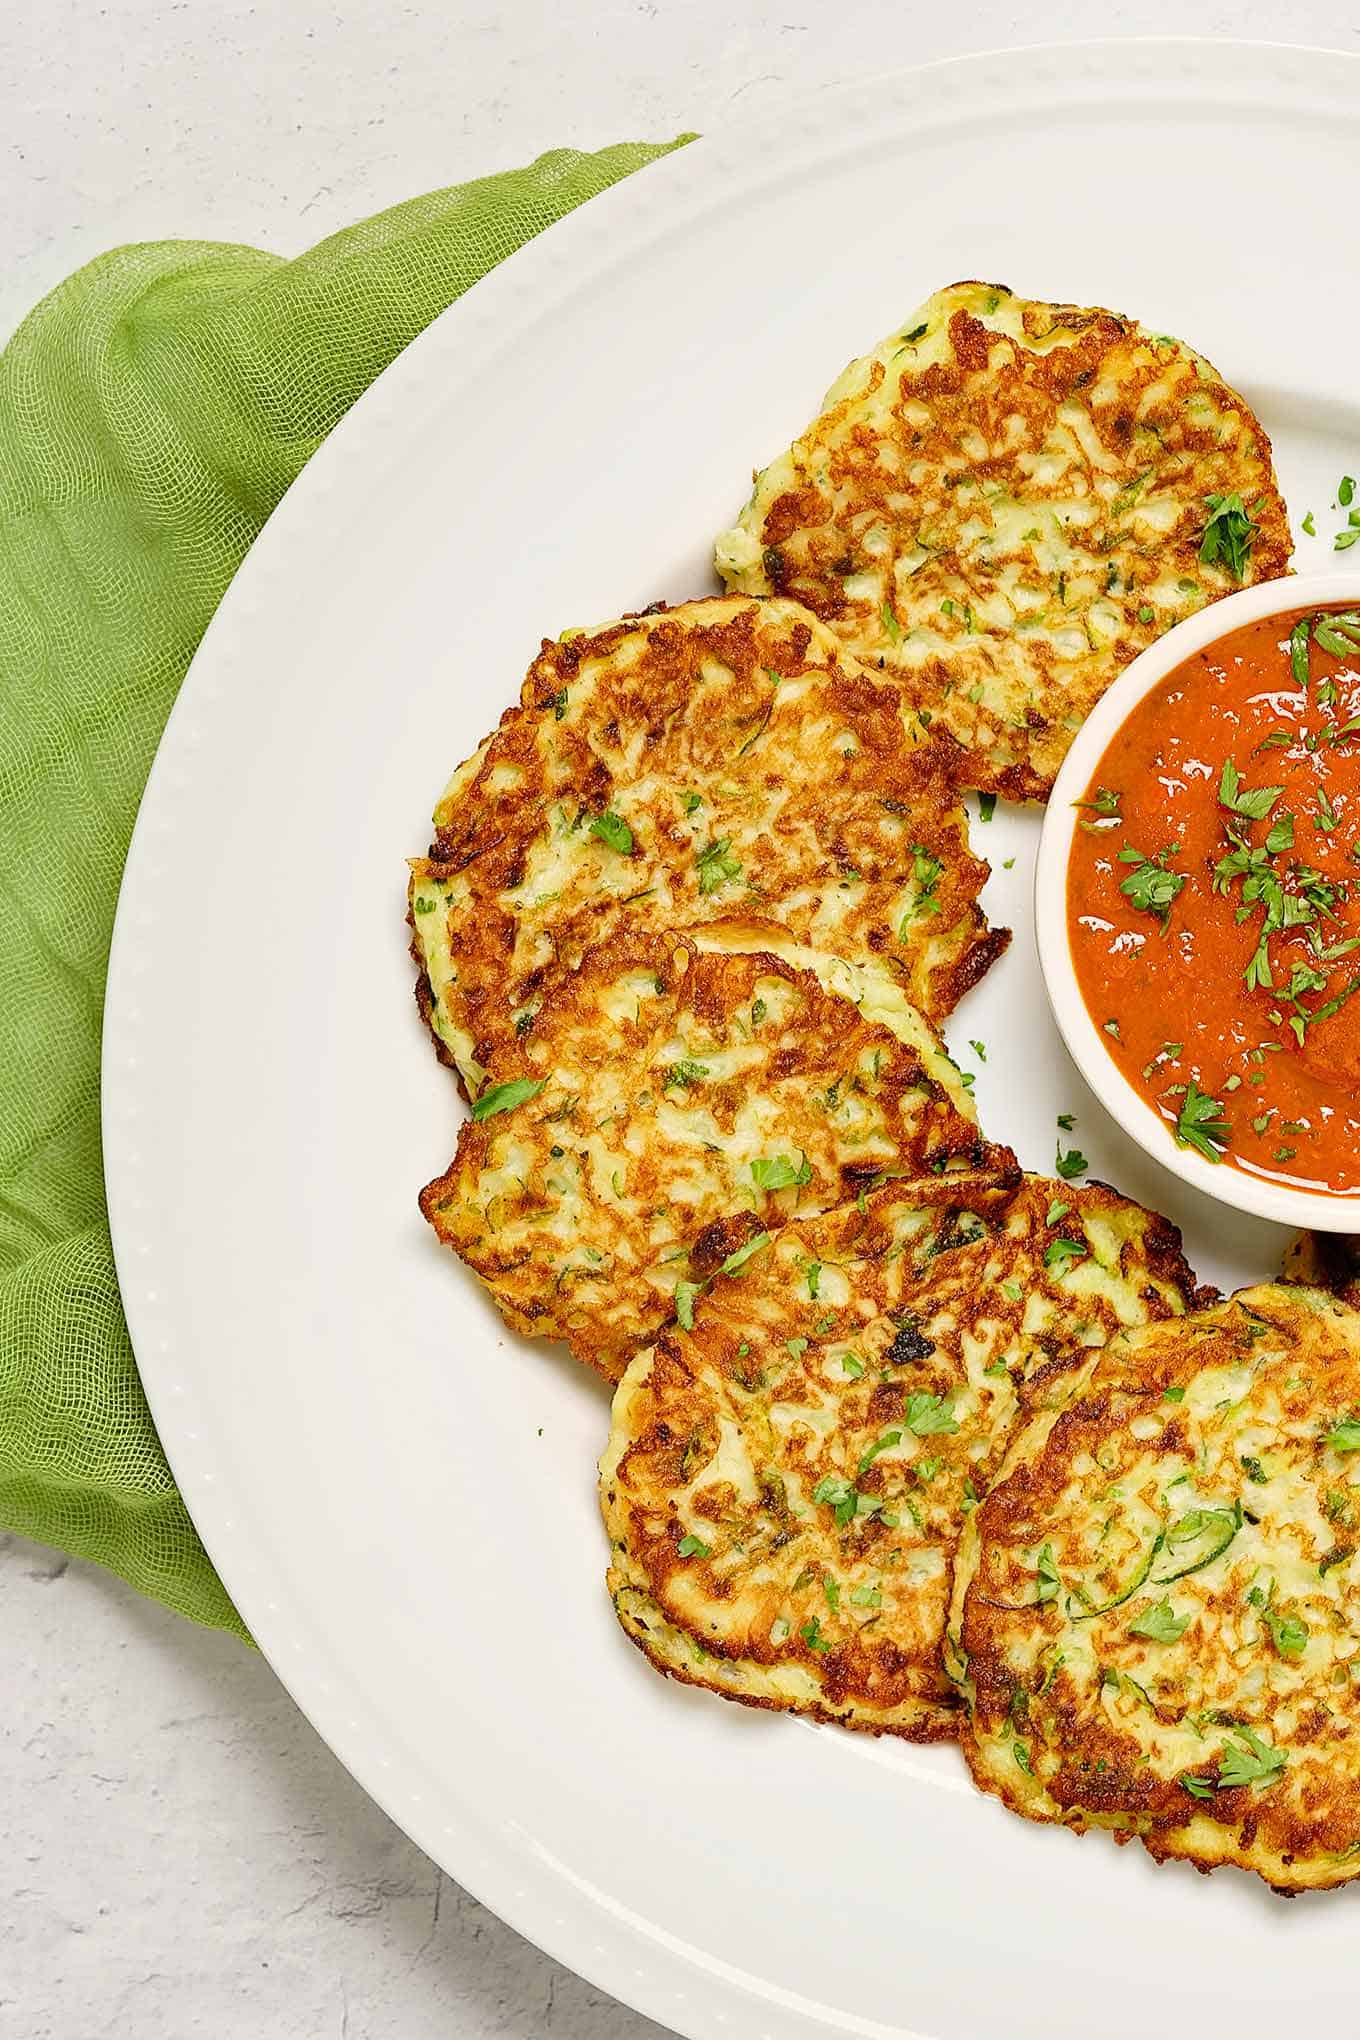 Zucchini fritters arranged on a serving plate with a bowl of marinara sauce for dipping in the center.